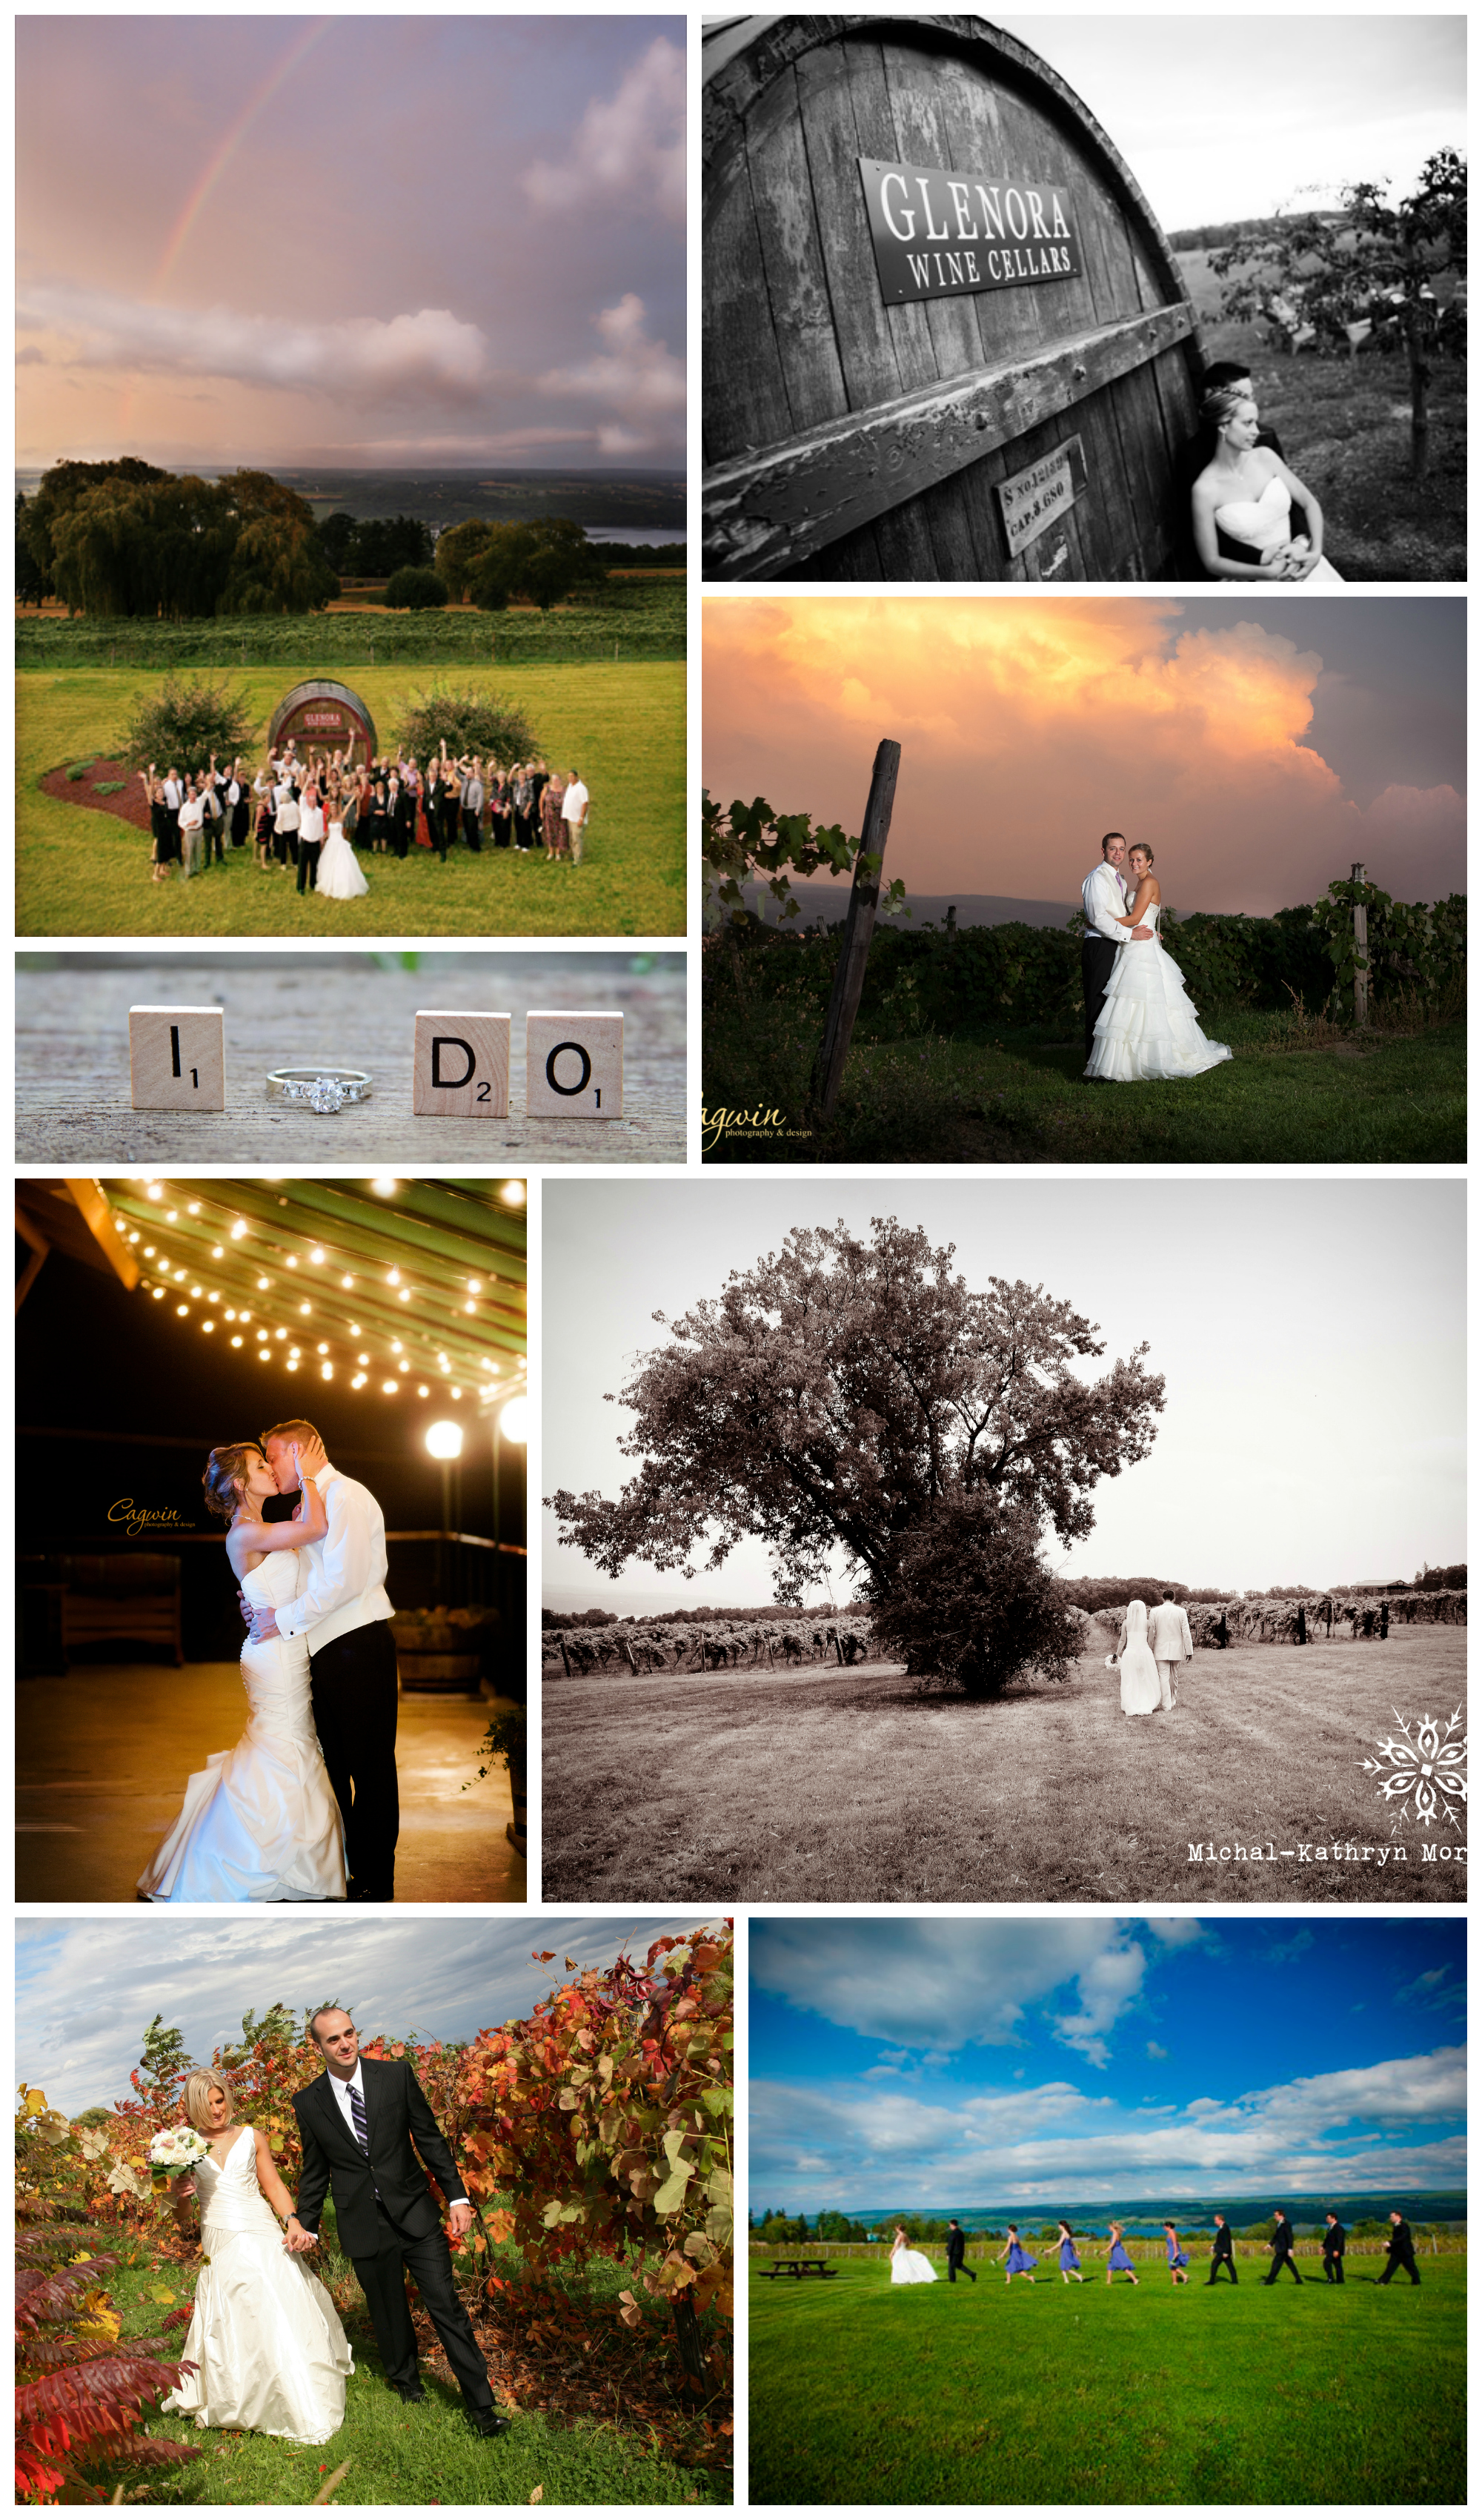 Glenora Wine Cellars Wedding Collage